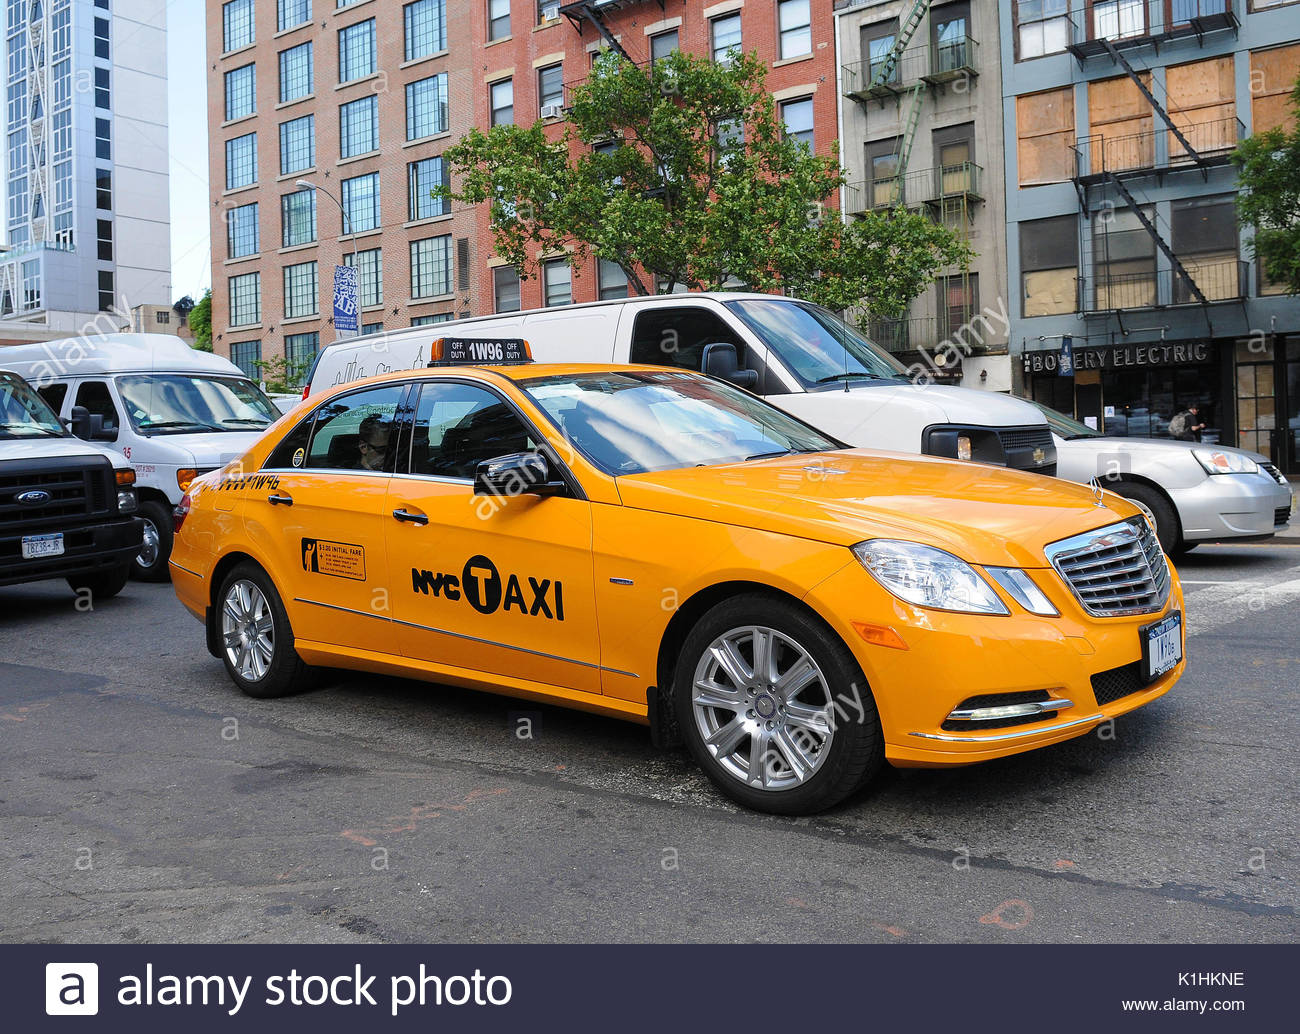 Nyc taxi cab mercedes benz yellow taxi cab spotted on the for Mercedes benz nyc